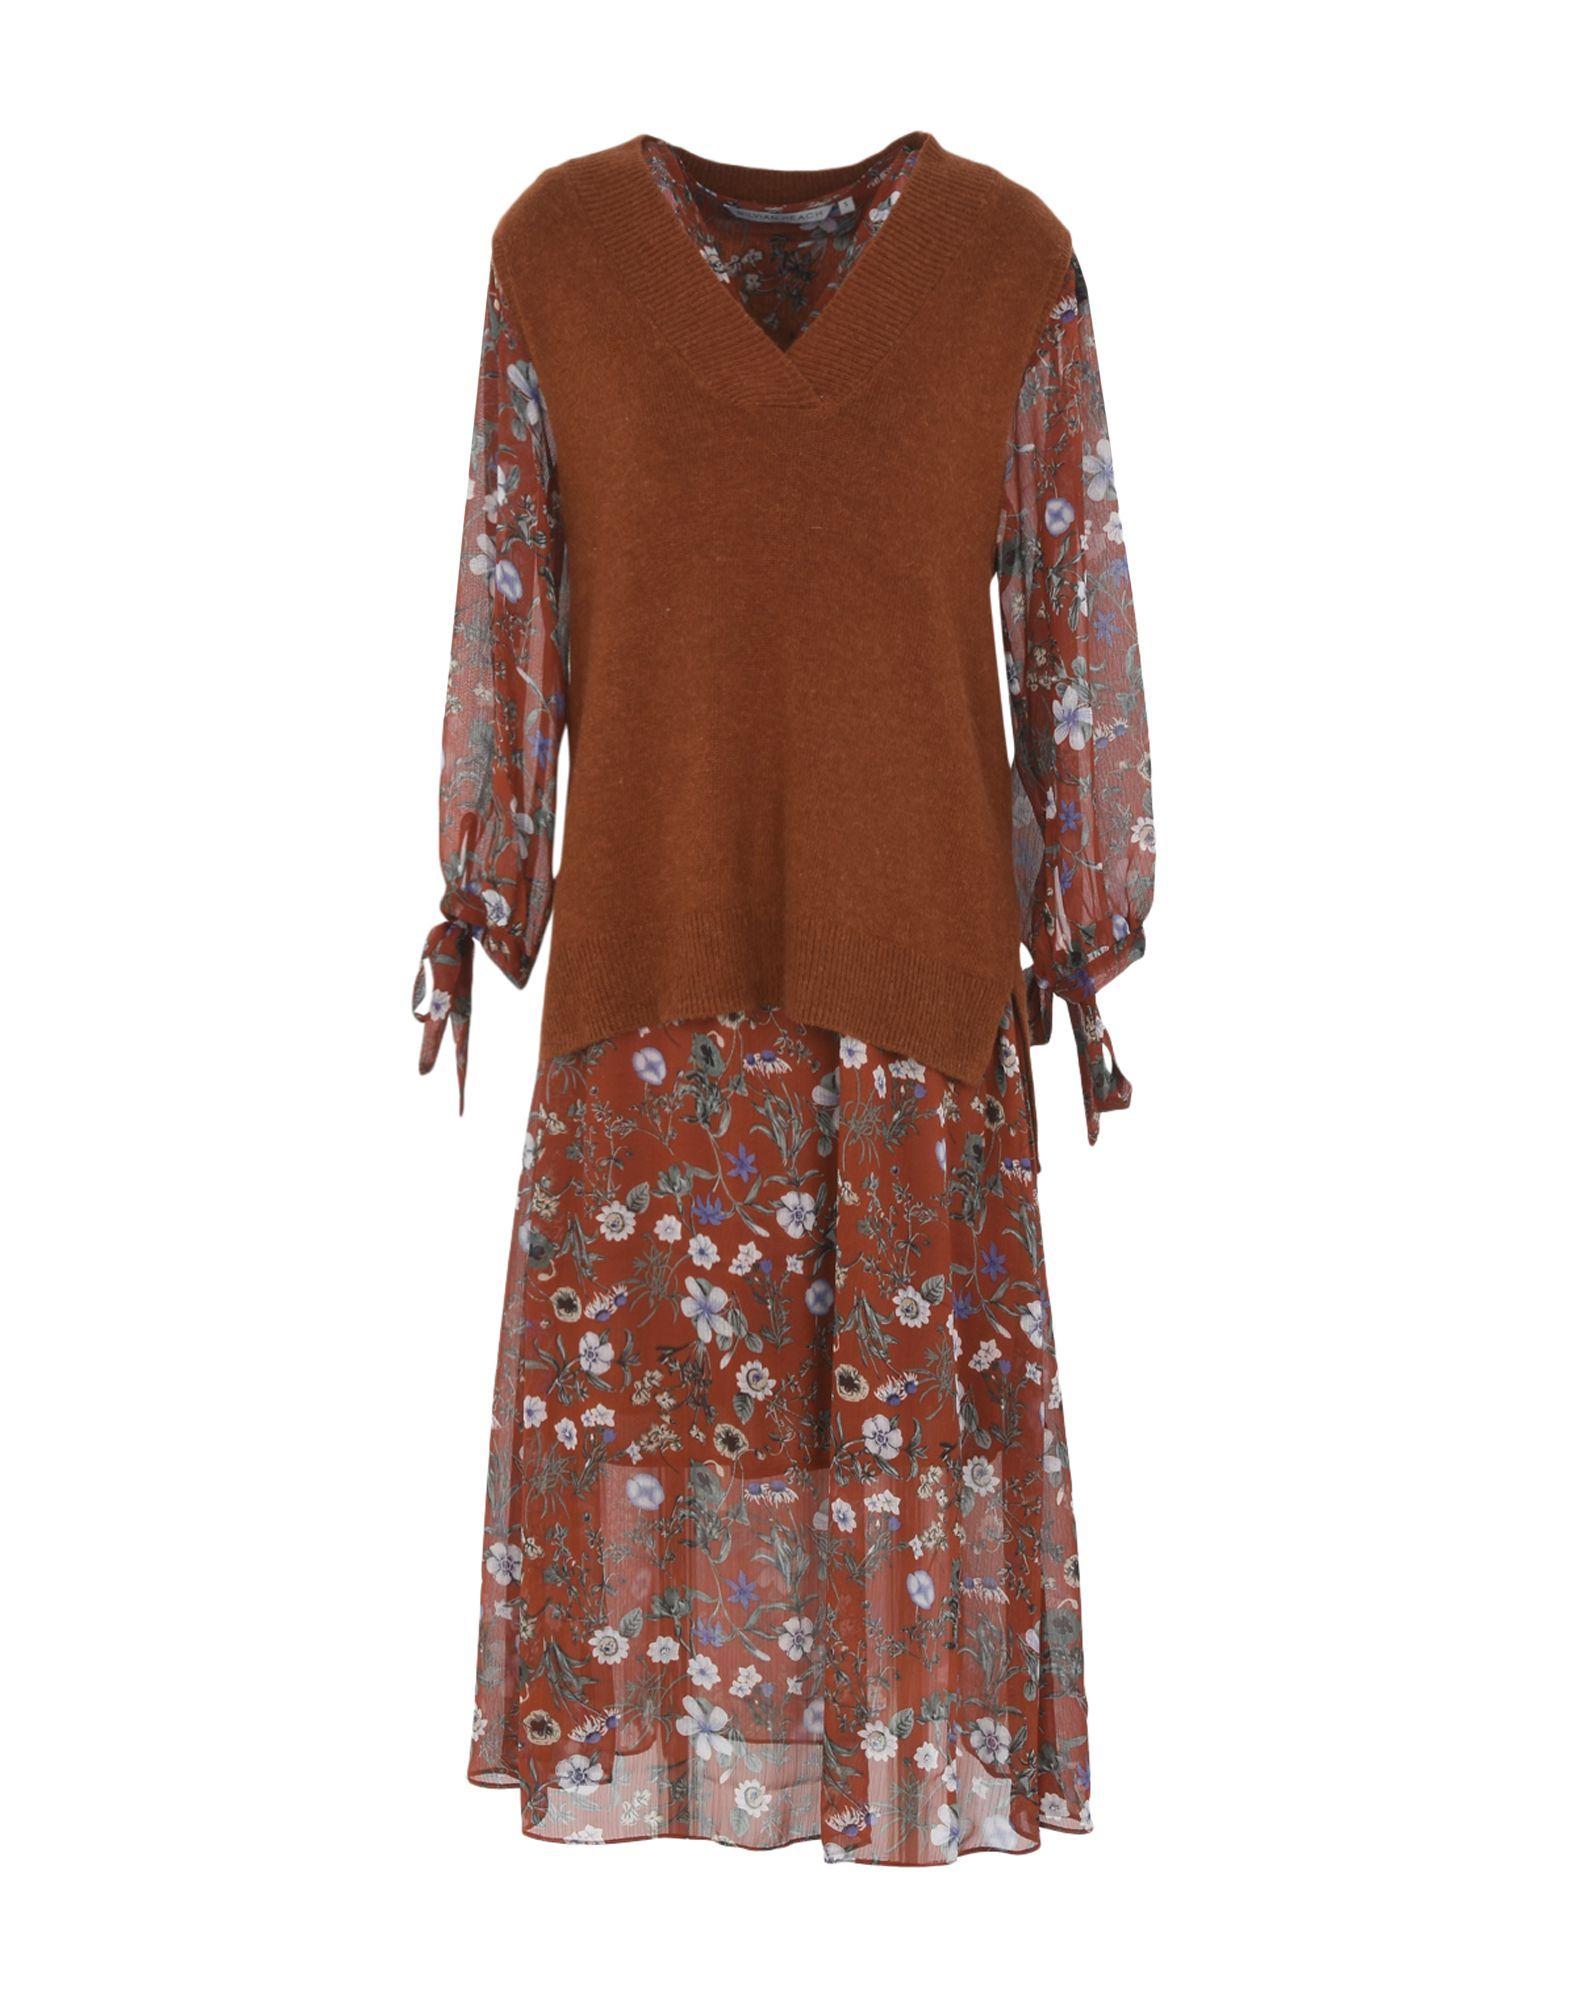 Silvian Heach Brown Print Dress